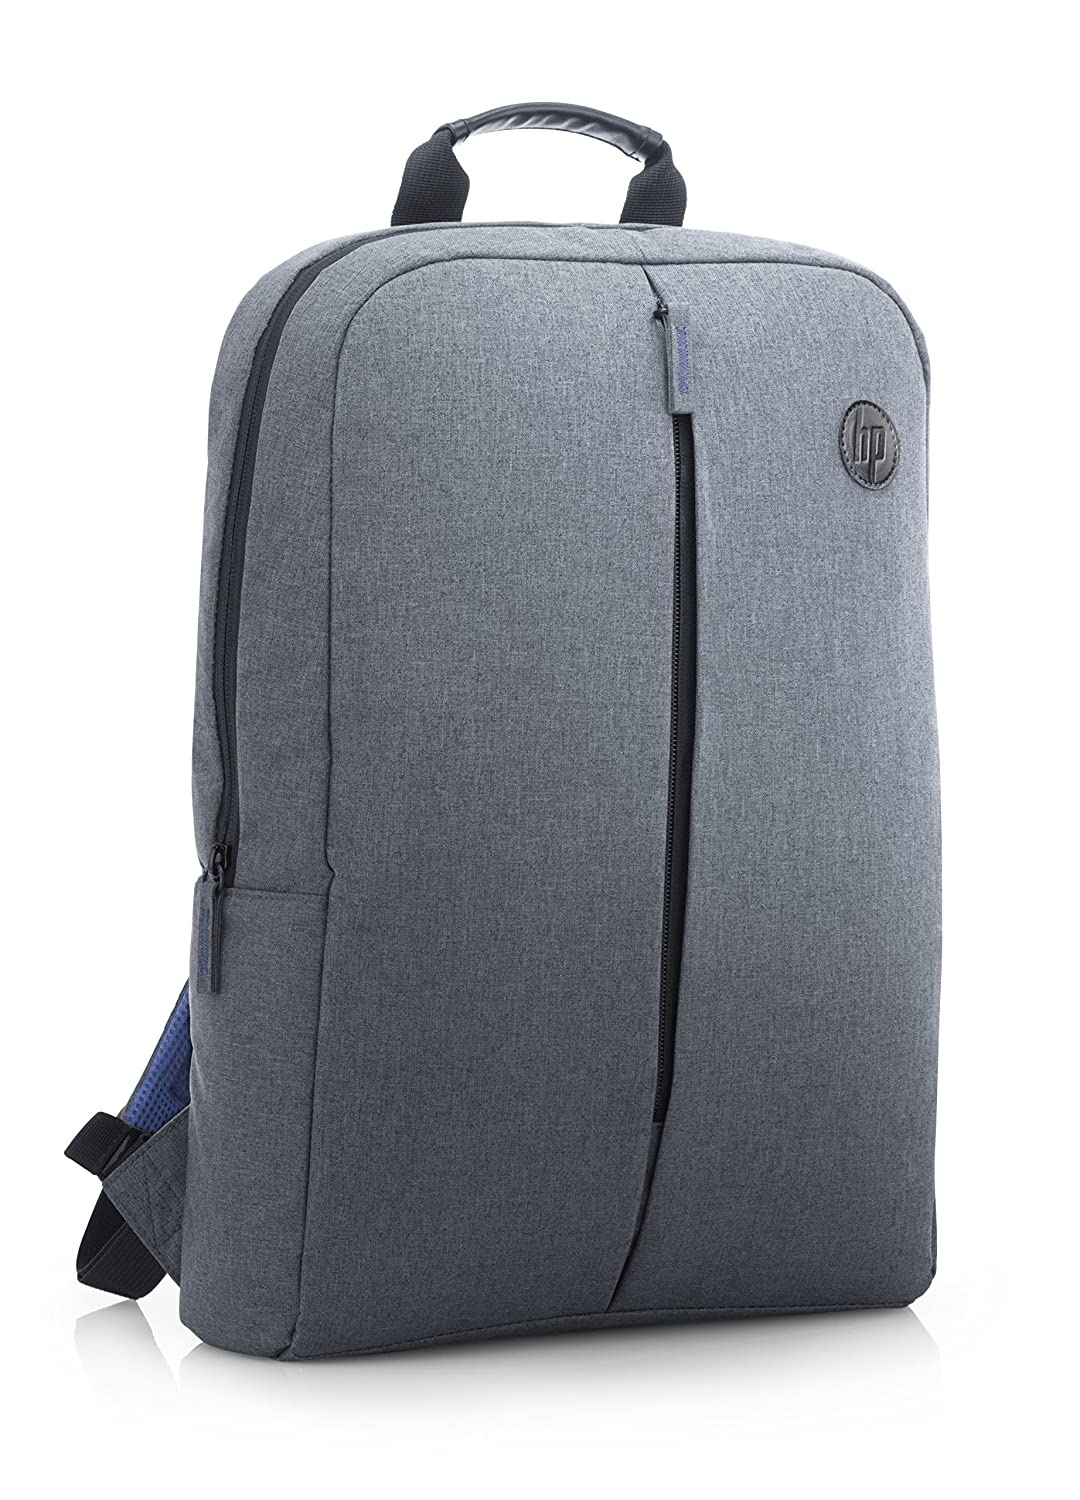 HP Value Backpack  Mochila para portátiles de hasta  gris y